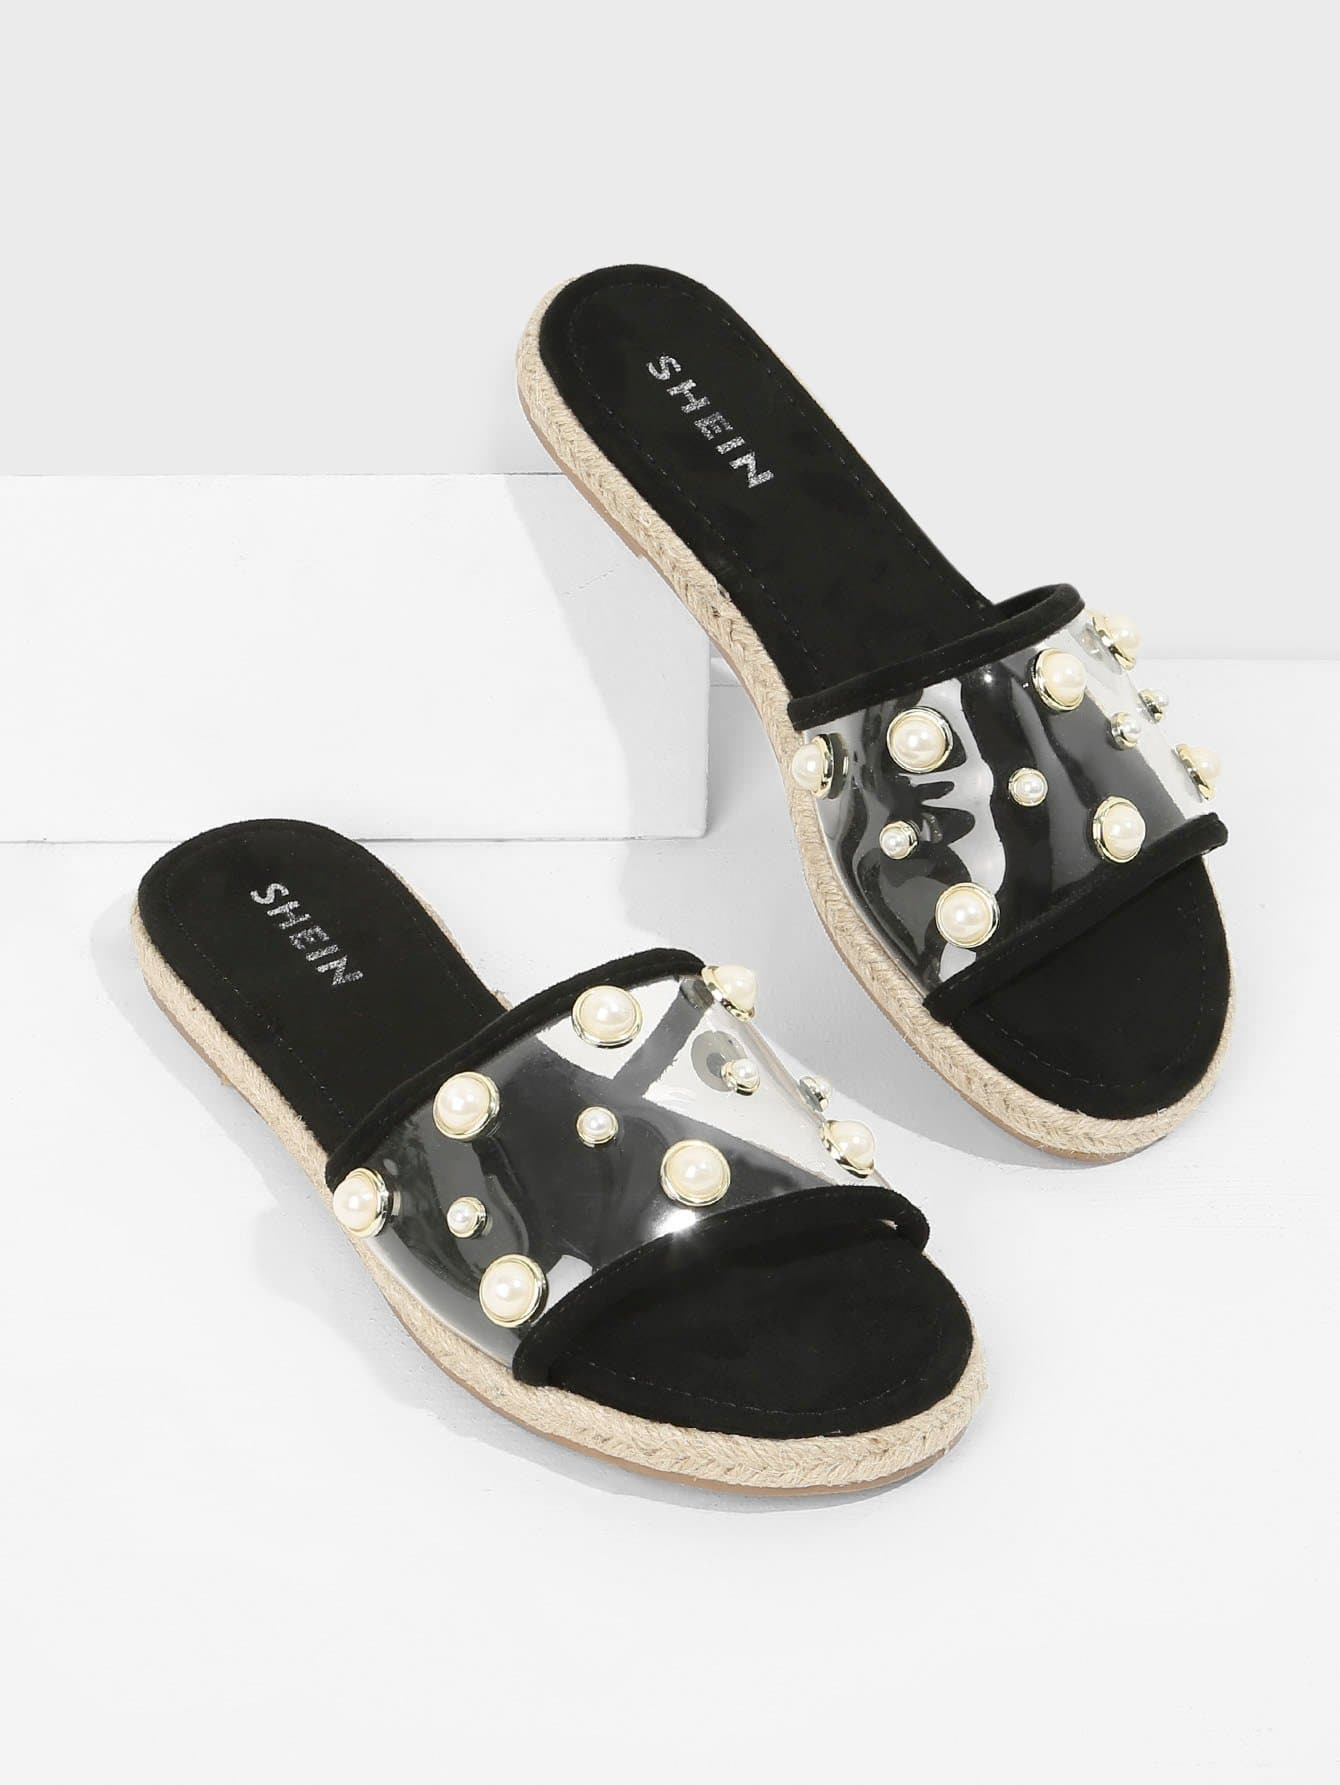 Faux Pearl Decorated Flats characteristic faux crystal beads decorated faux pearl embellished barefoot sandal for women (one piece